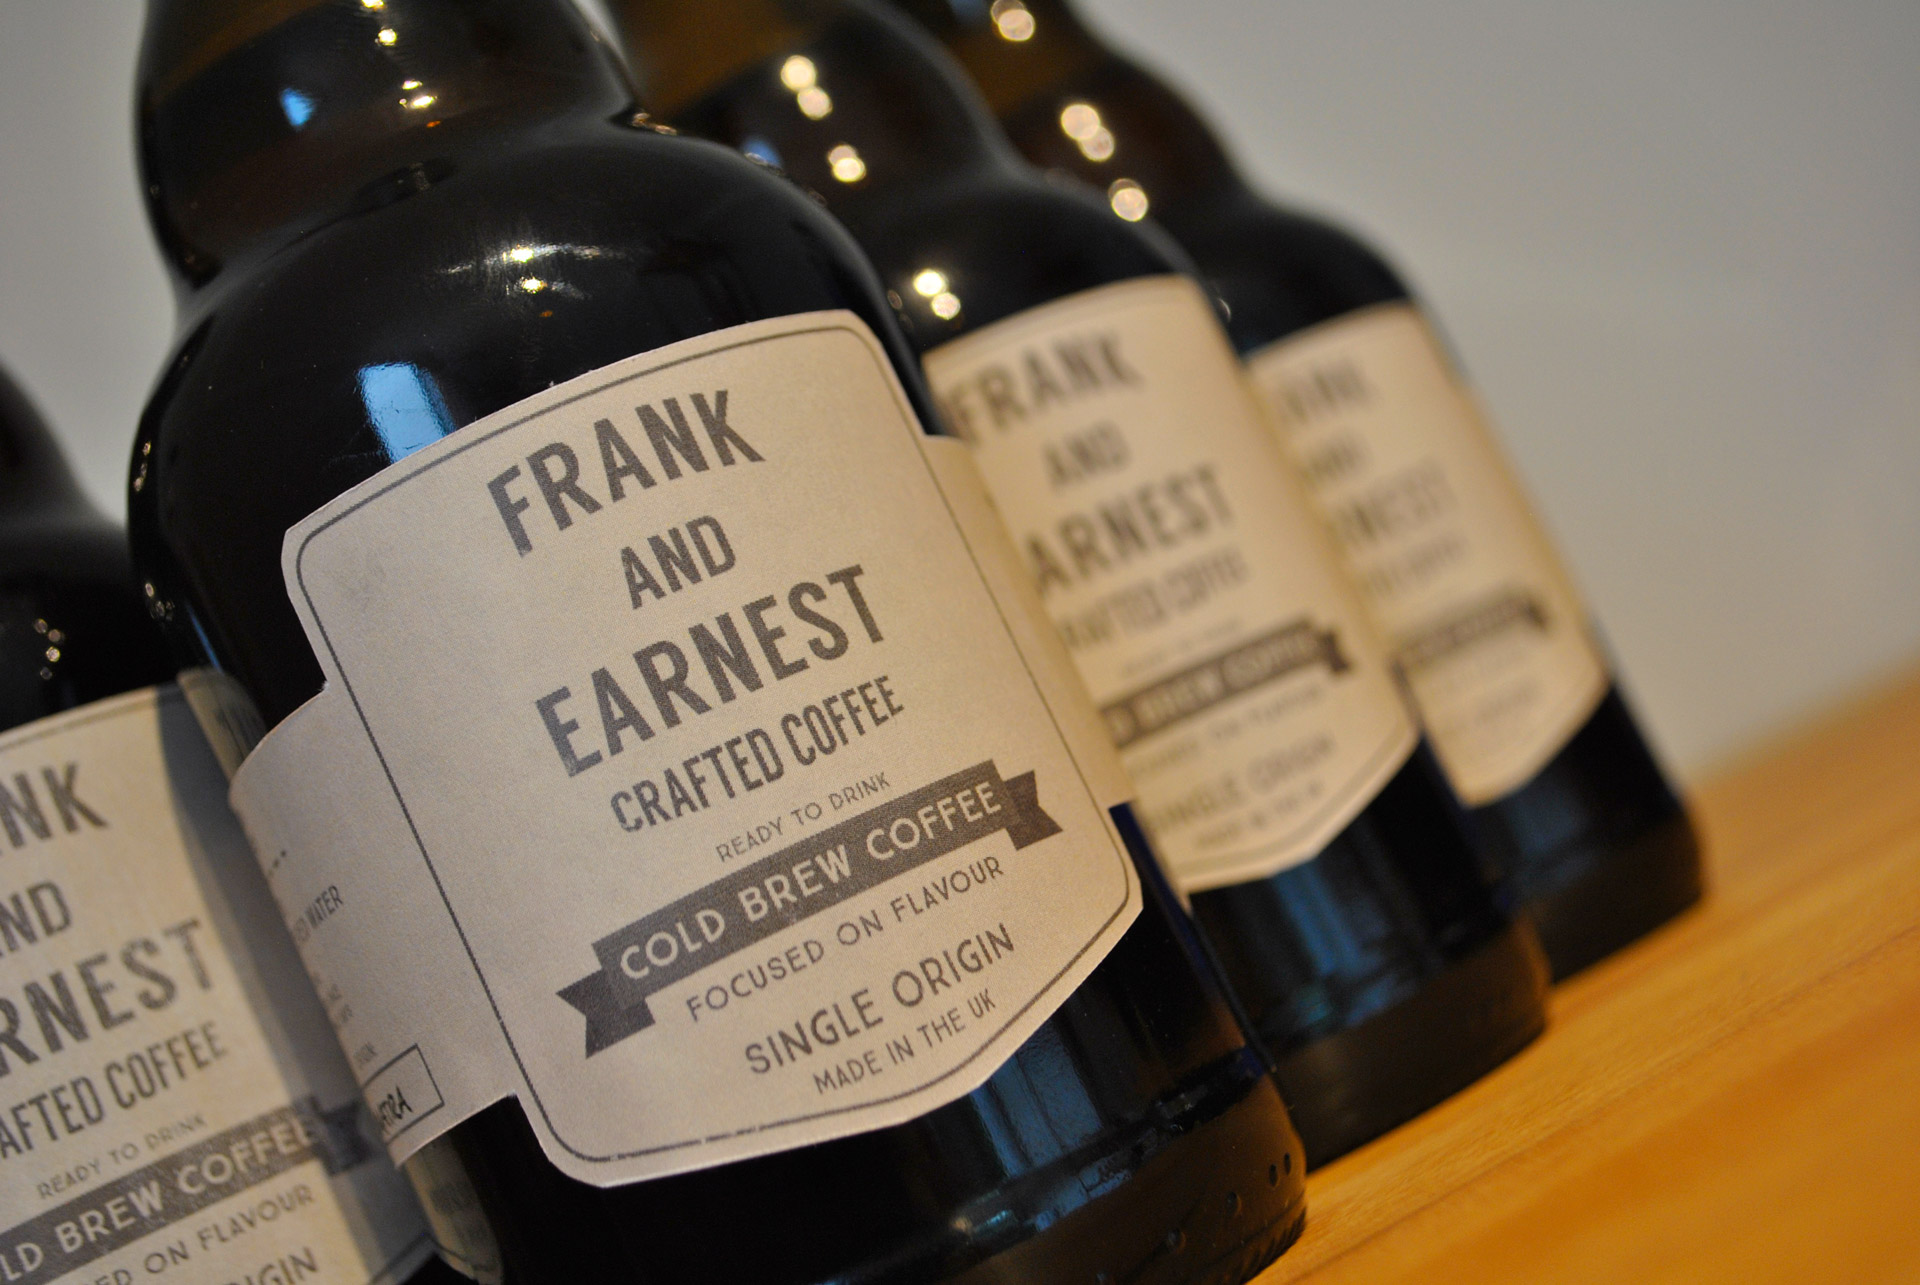 Frank and Earnest Crafted Coffee Cold Brew Bottle